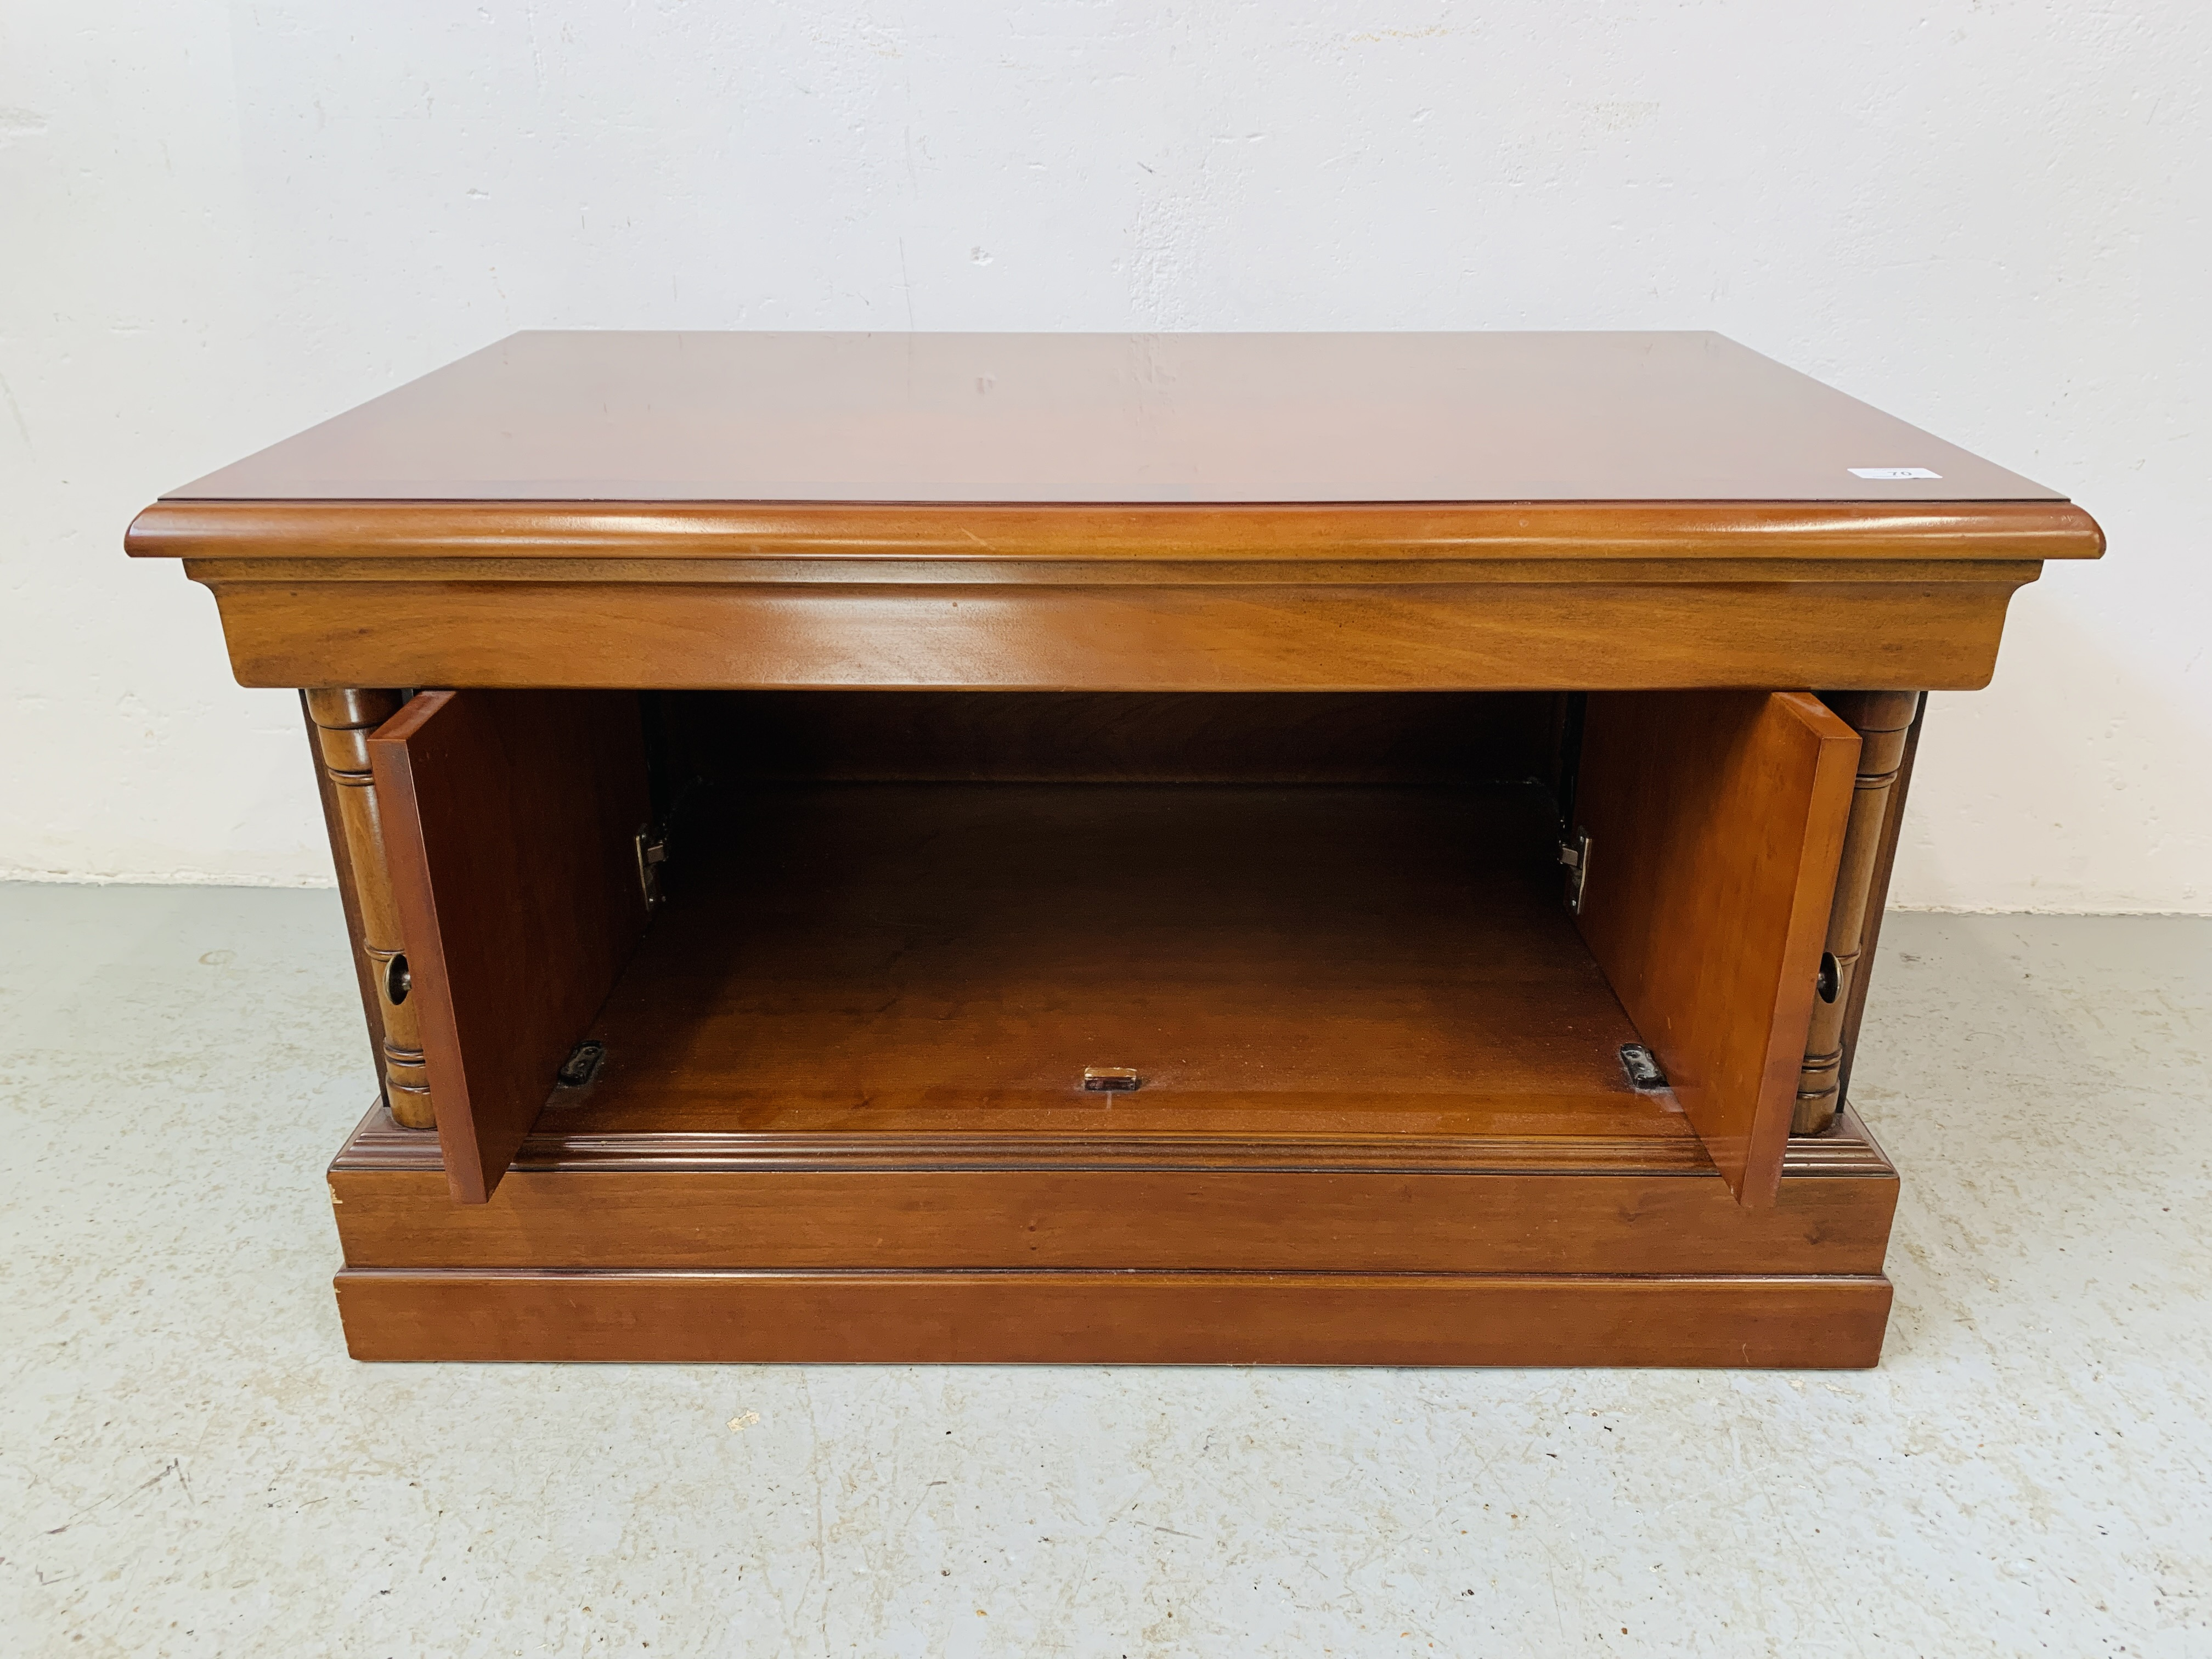 A MODERN CHERRYWOOD FINISH TELEVISION STAND - Image 5 of 7